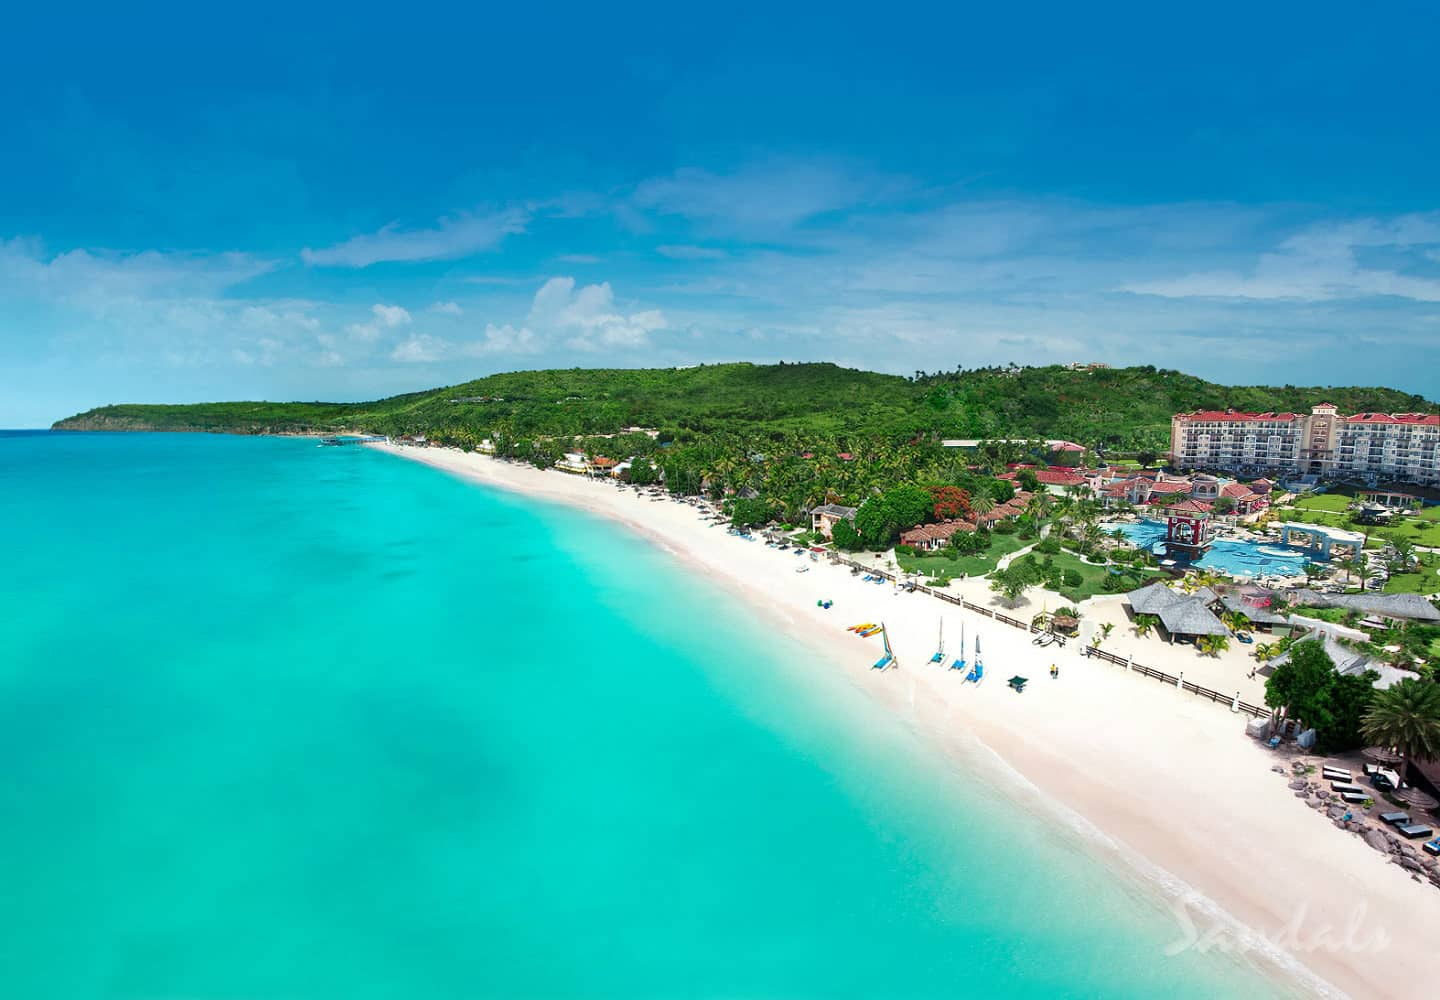 reopening the stunning Sandals Grande Antigua, part of Sandals resort news winter 2017